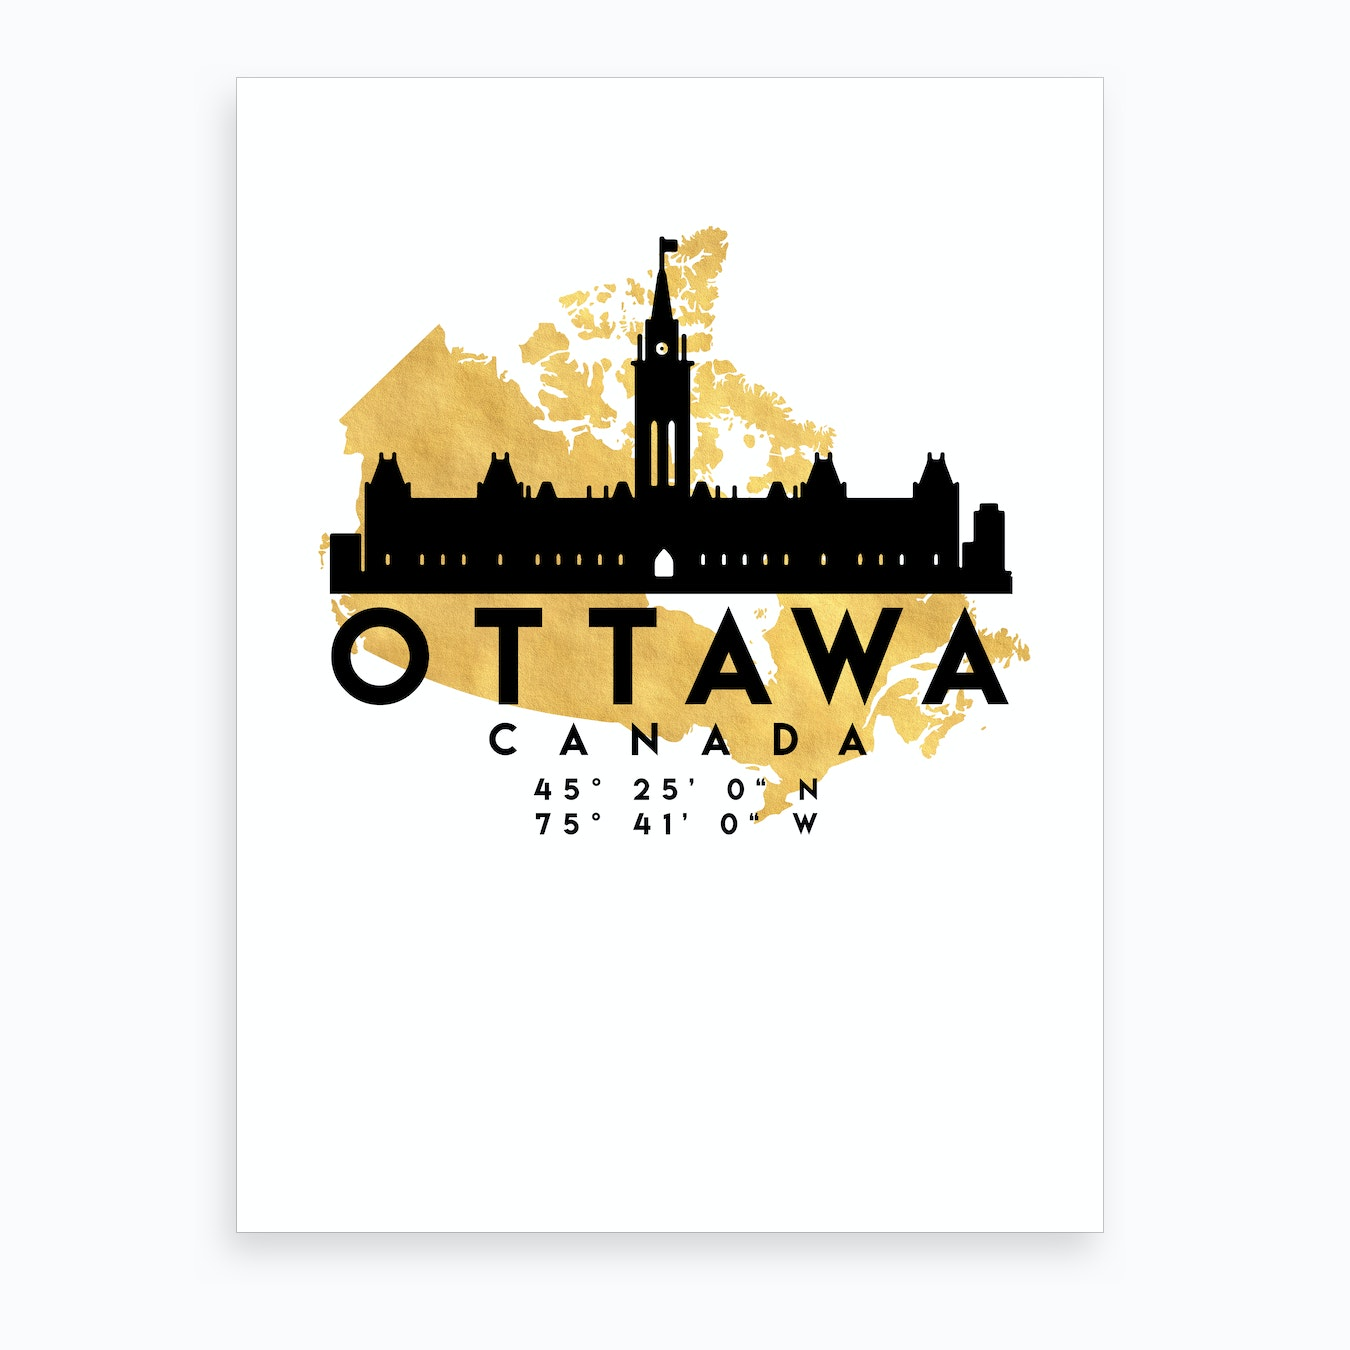 Map Of Canada Silhouette.Ottawa Canada Silhouette City Skyline Map